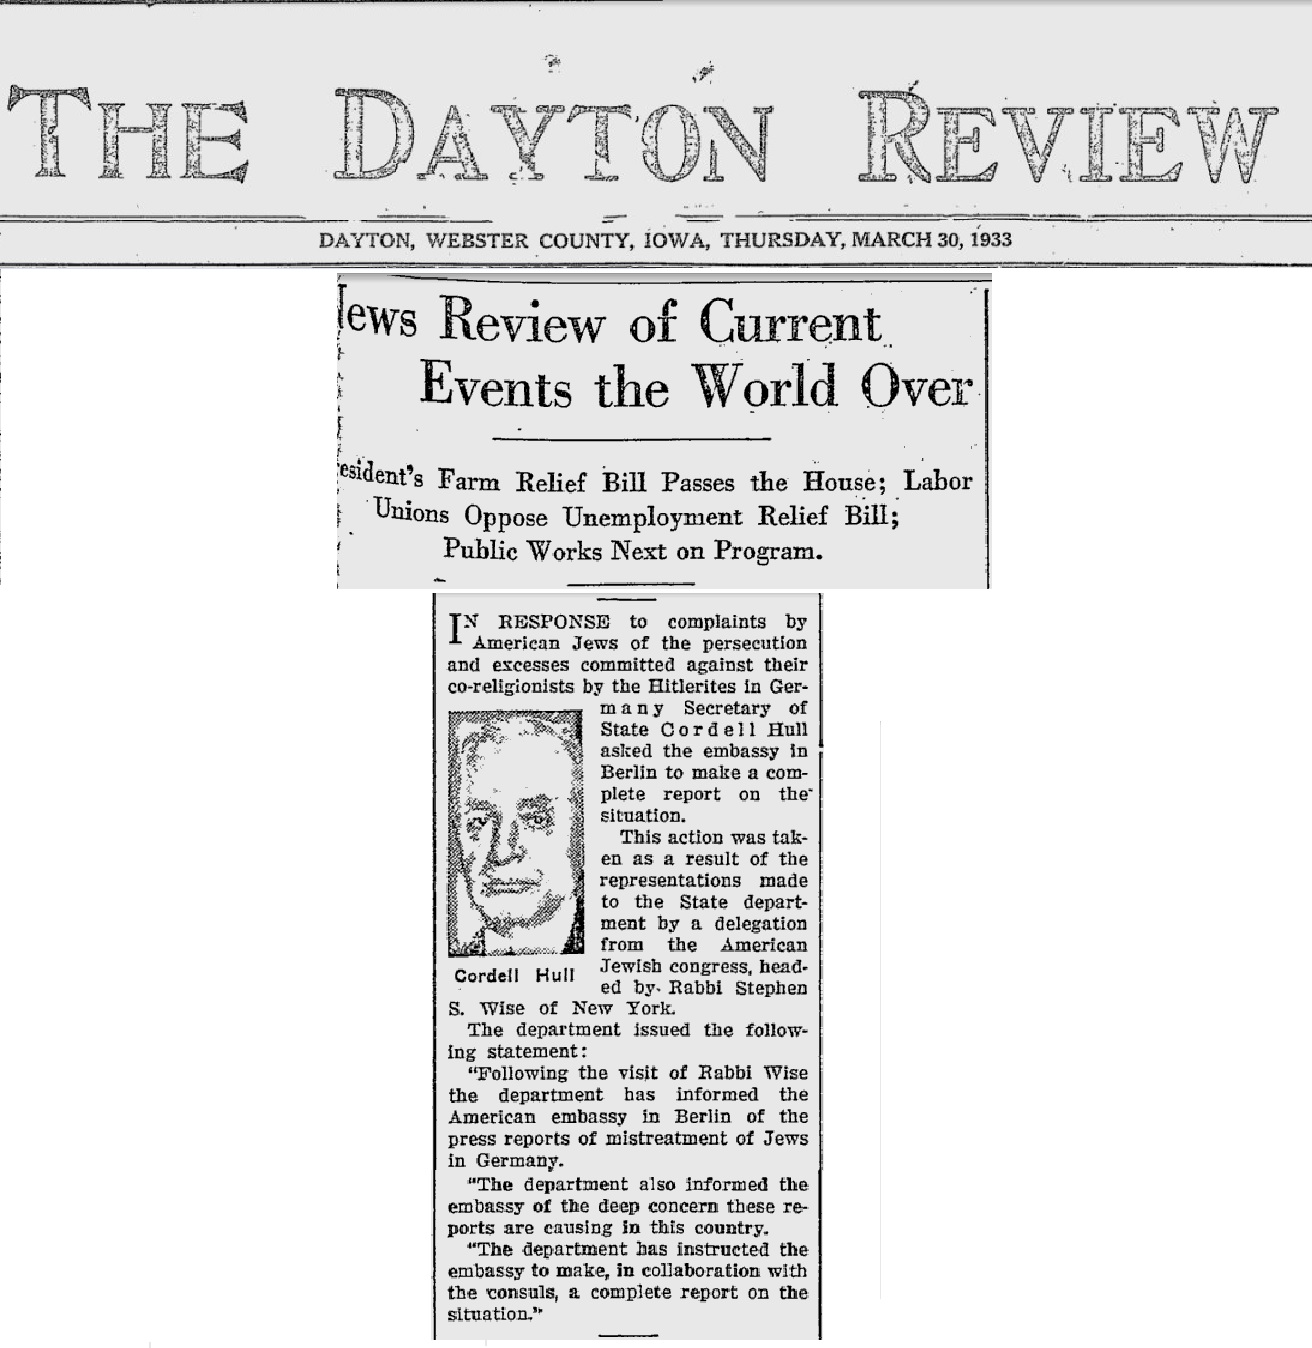 Holocaust - The Dayton Review - Mistreatment of Jews reported Stephen S. Wise Investigation by Cordell Hull.jpg